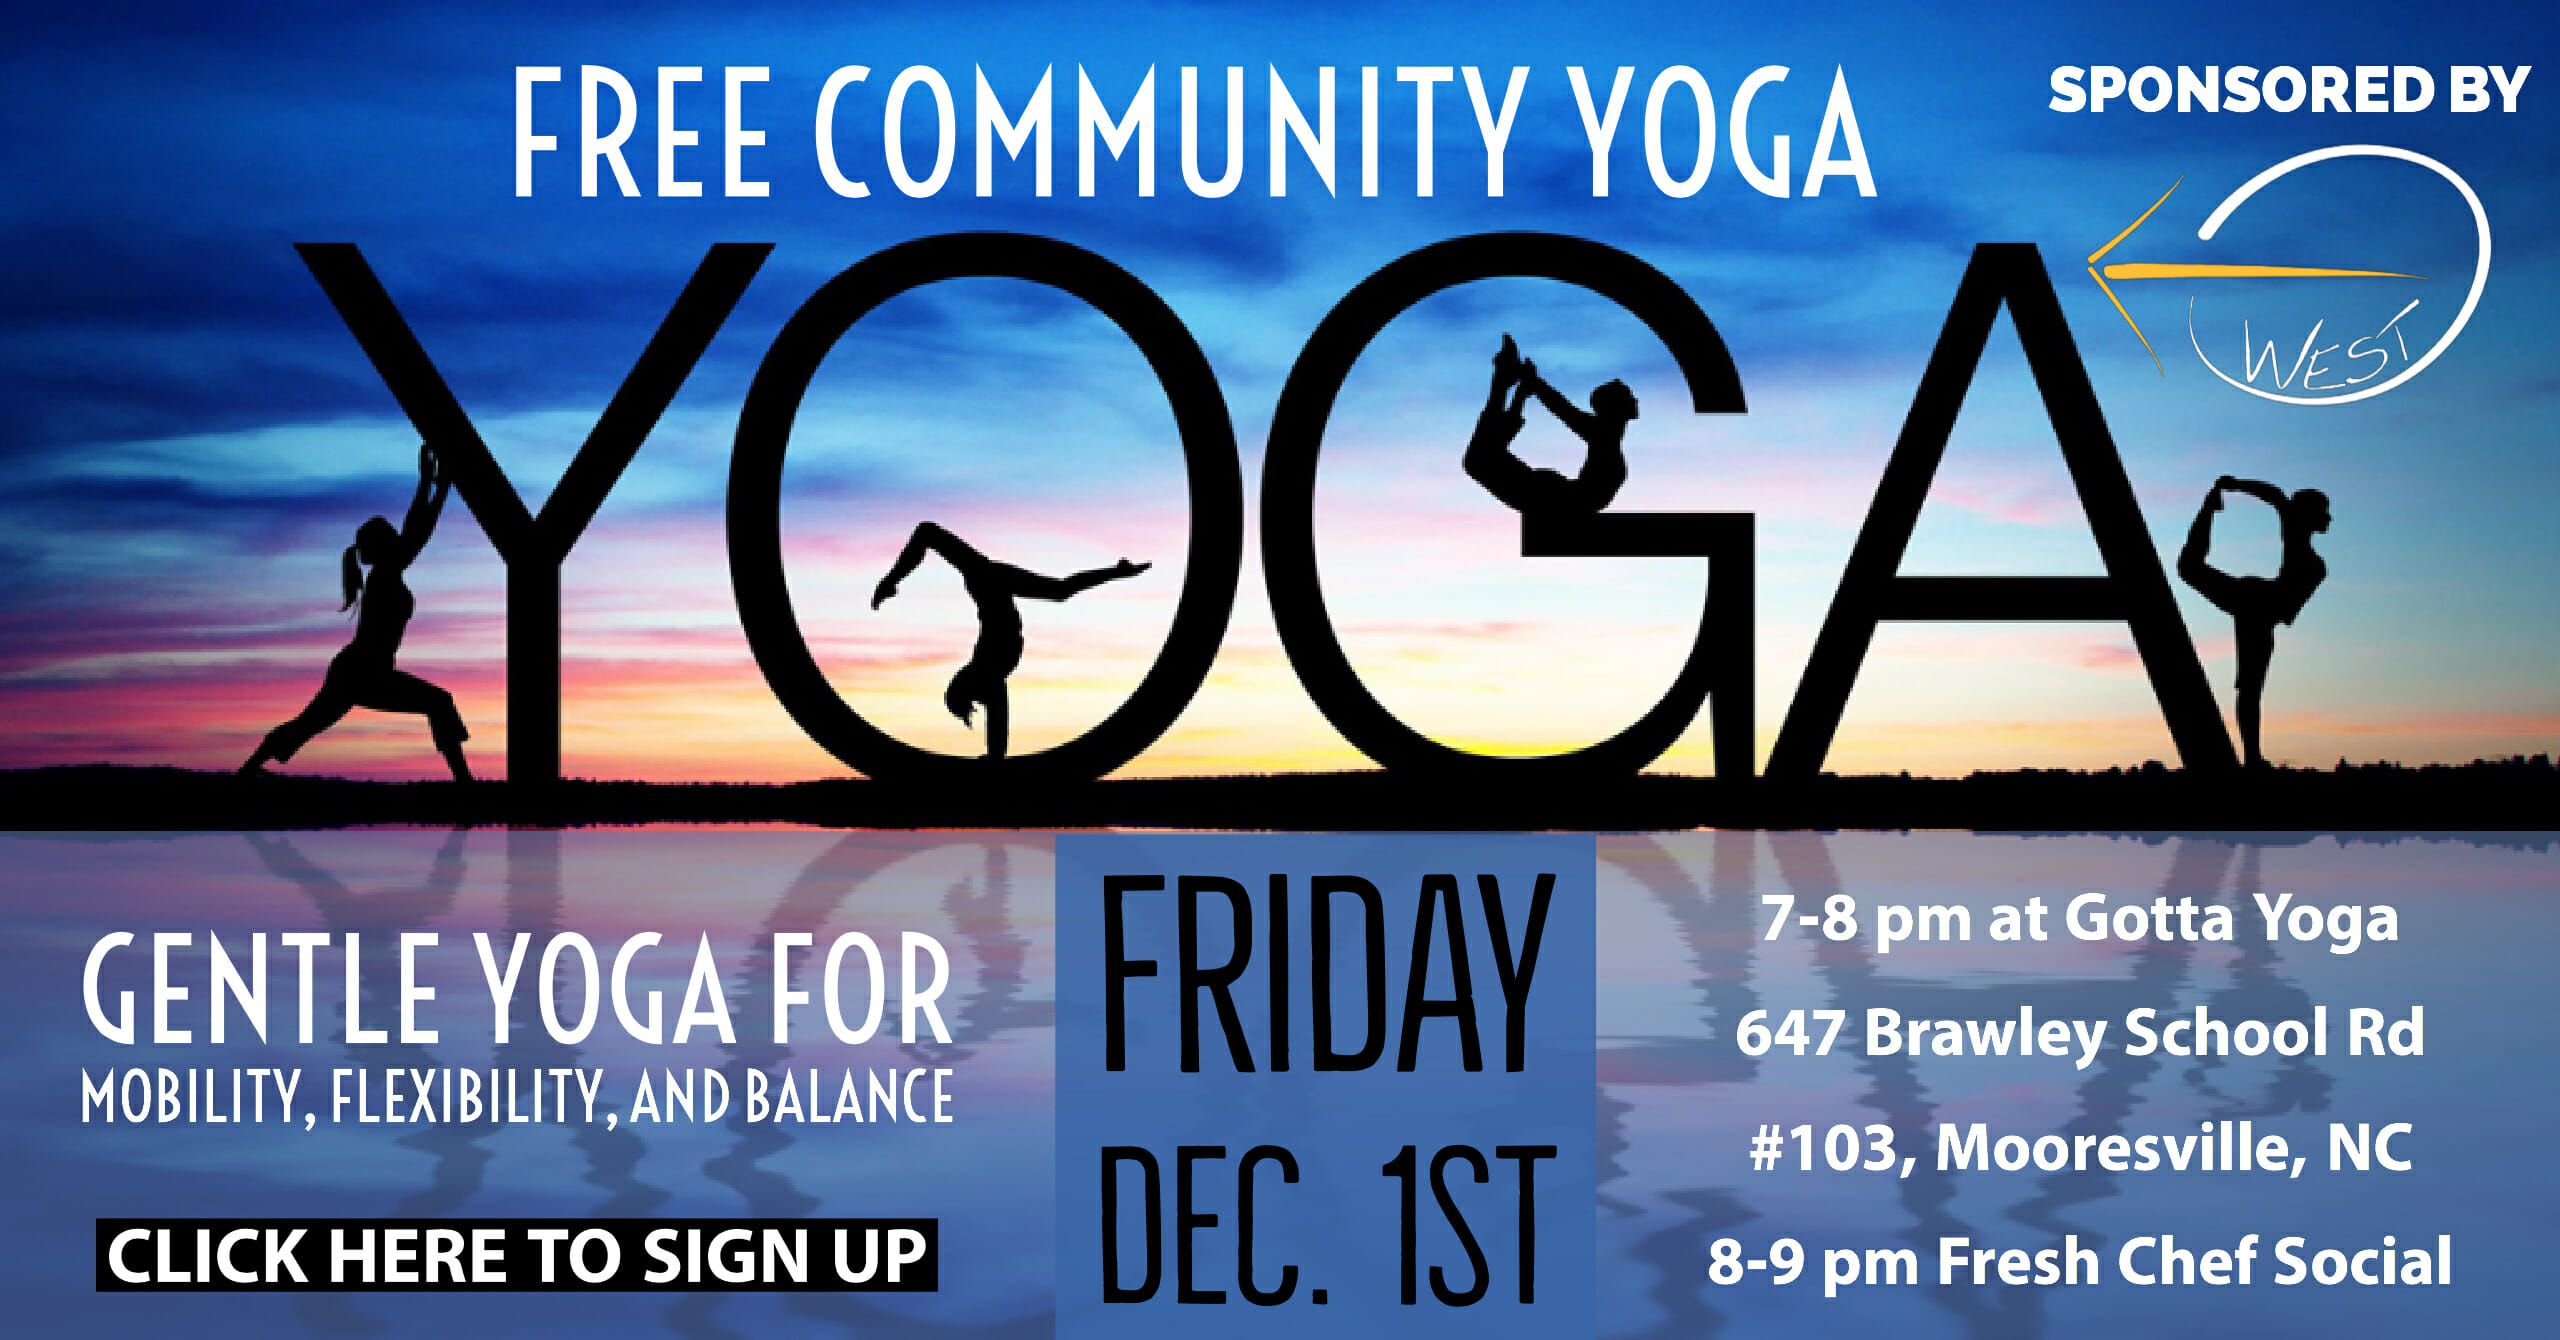 FREE Community Yoga and Social Every 1st and 3rd Friday!